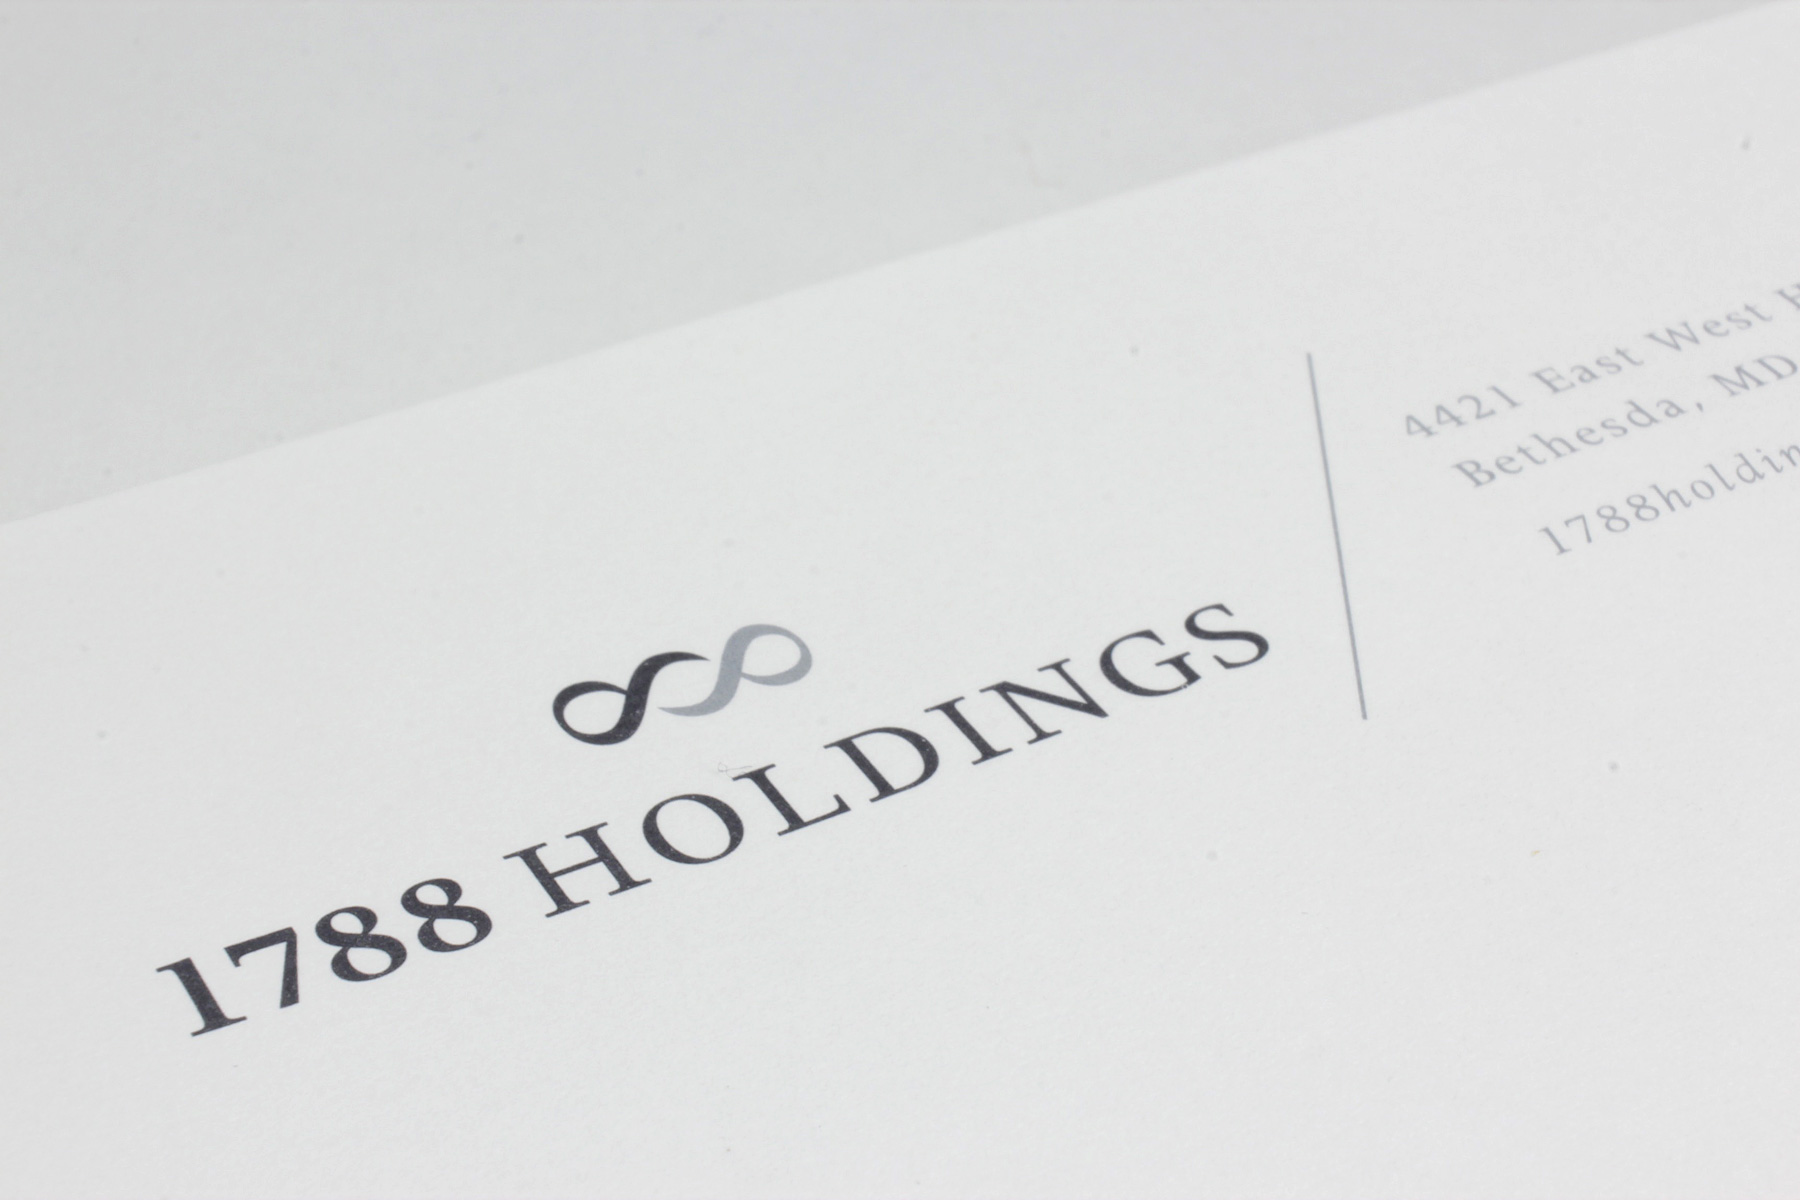 1788 Holdings Closeup